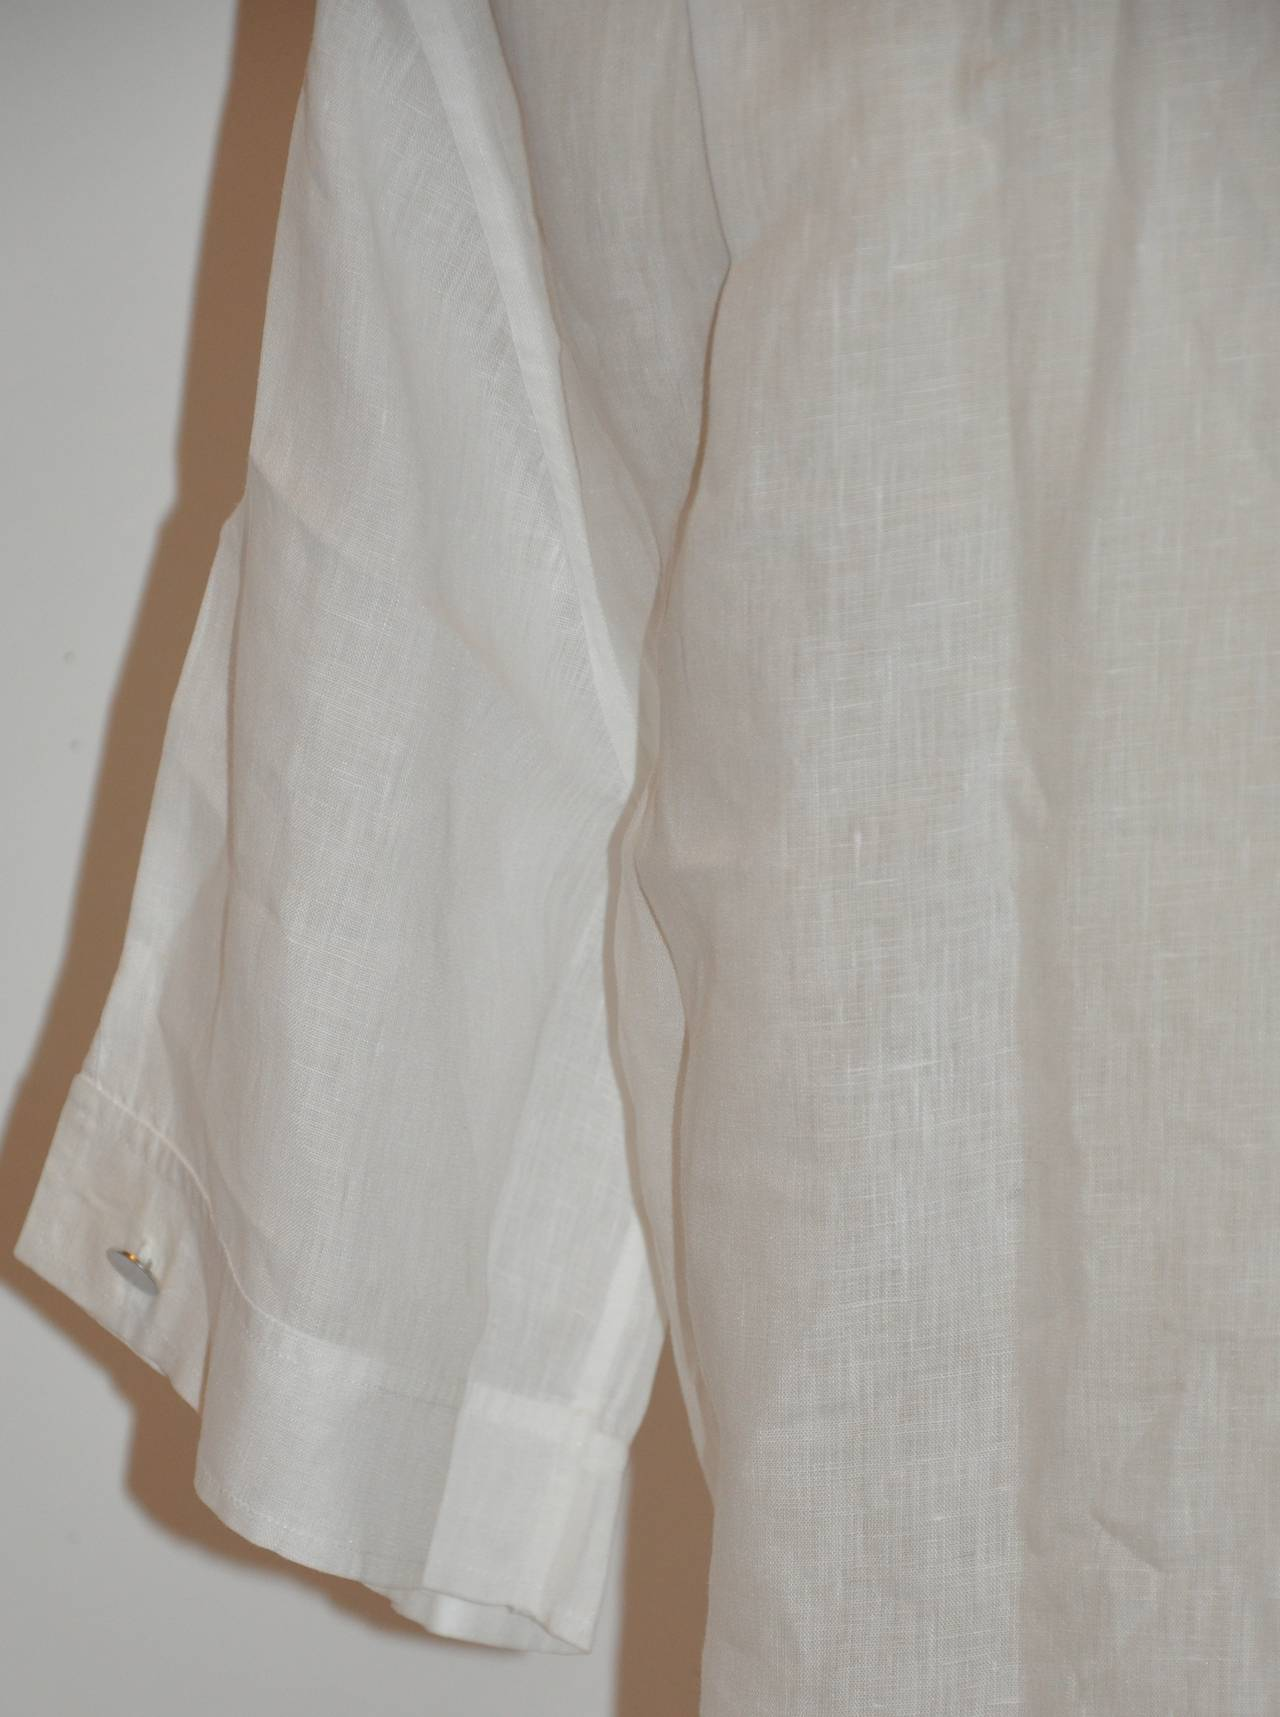 Hermes Men's White Linen Button Shirt with Detailed Cuffs For Sale 3